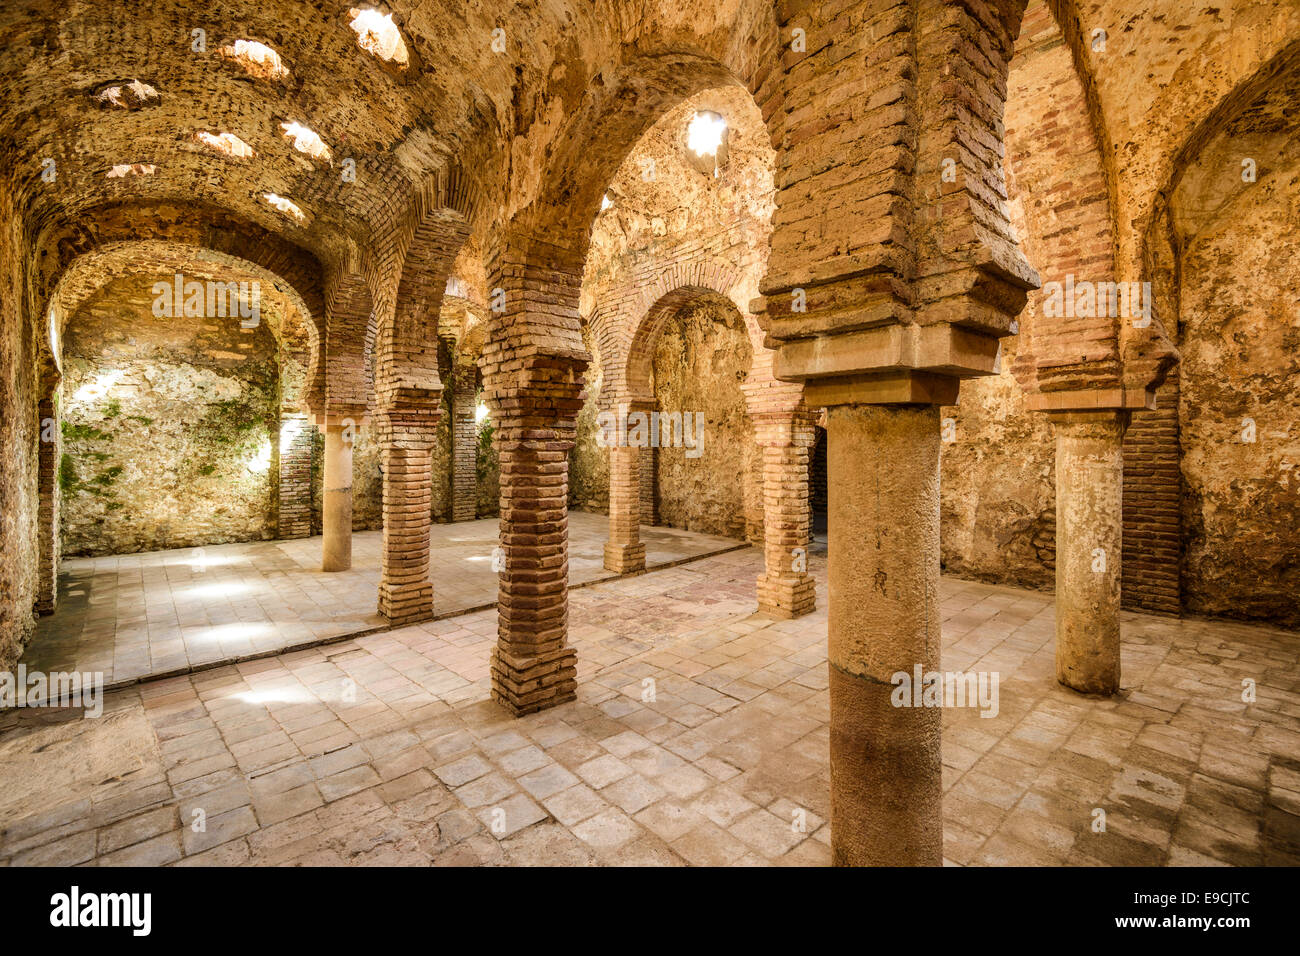 Ronda, Spain at the Arab Baths dating from the 11th-12th Centuries. Stock Photo